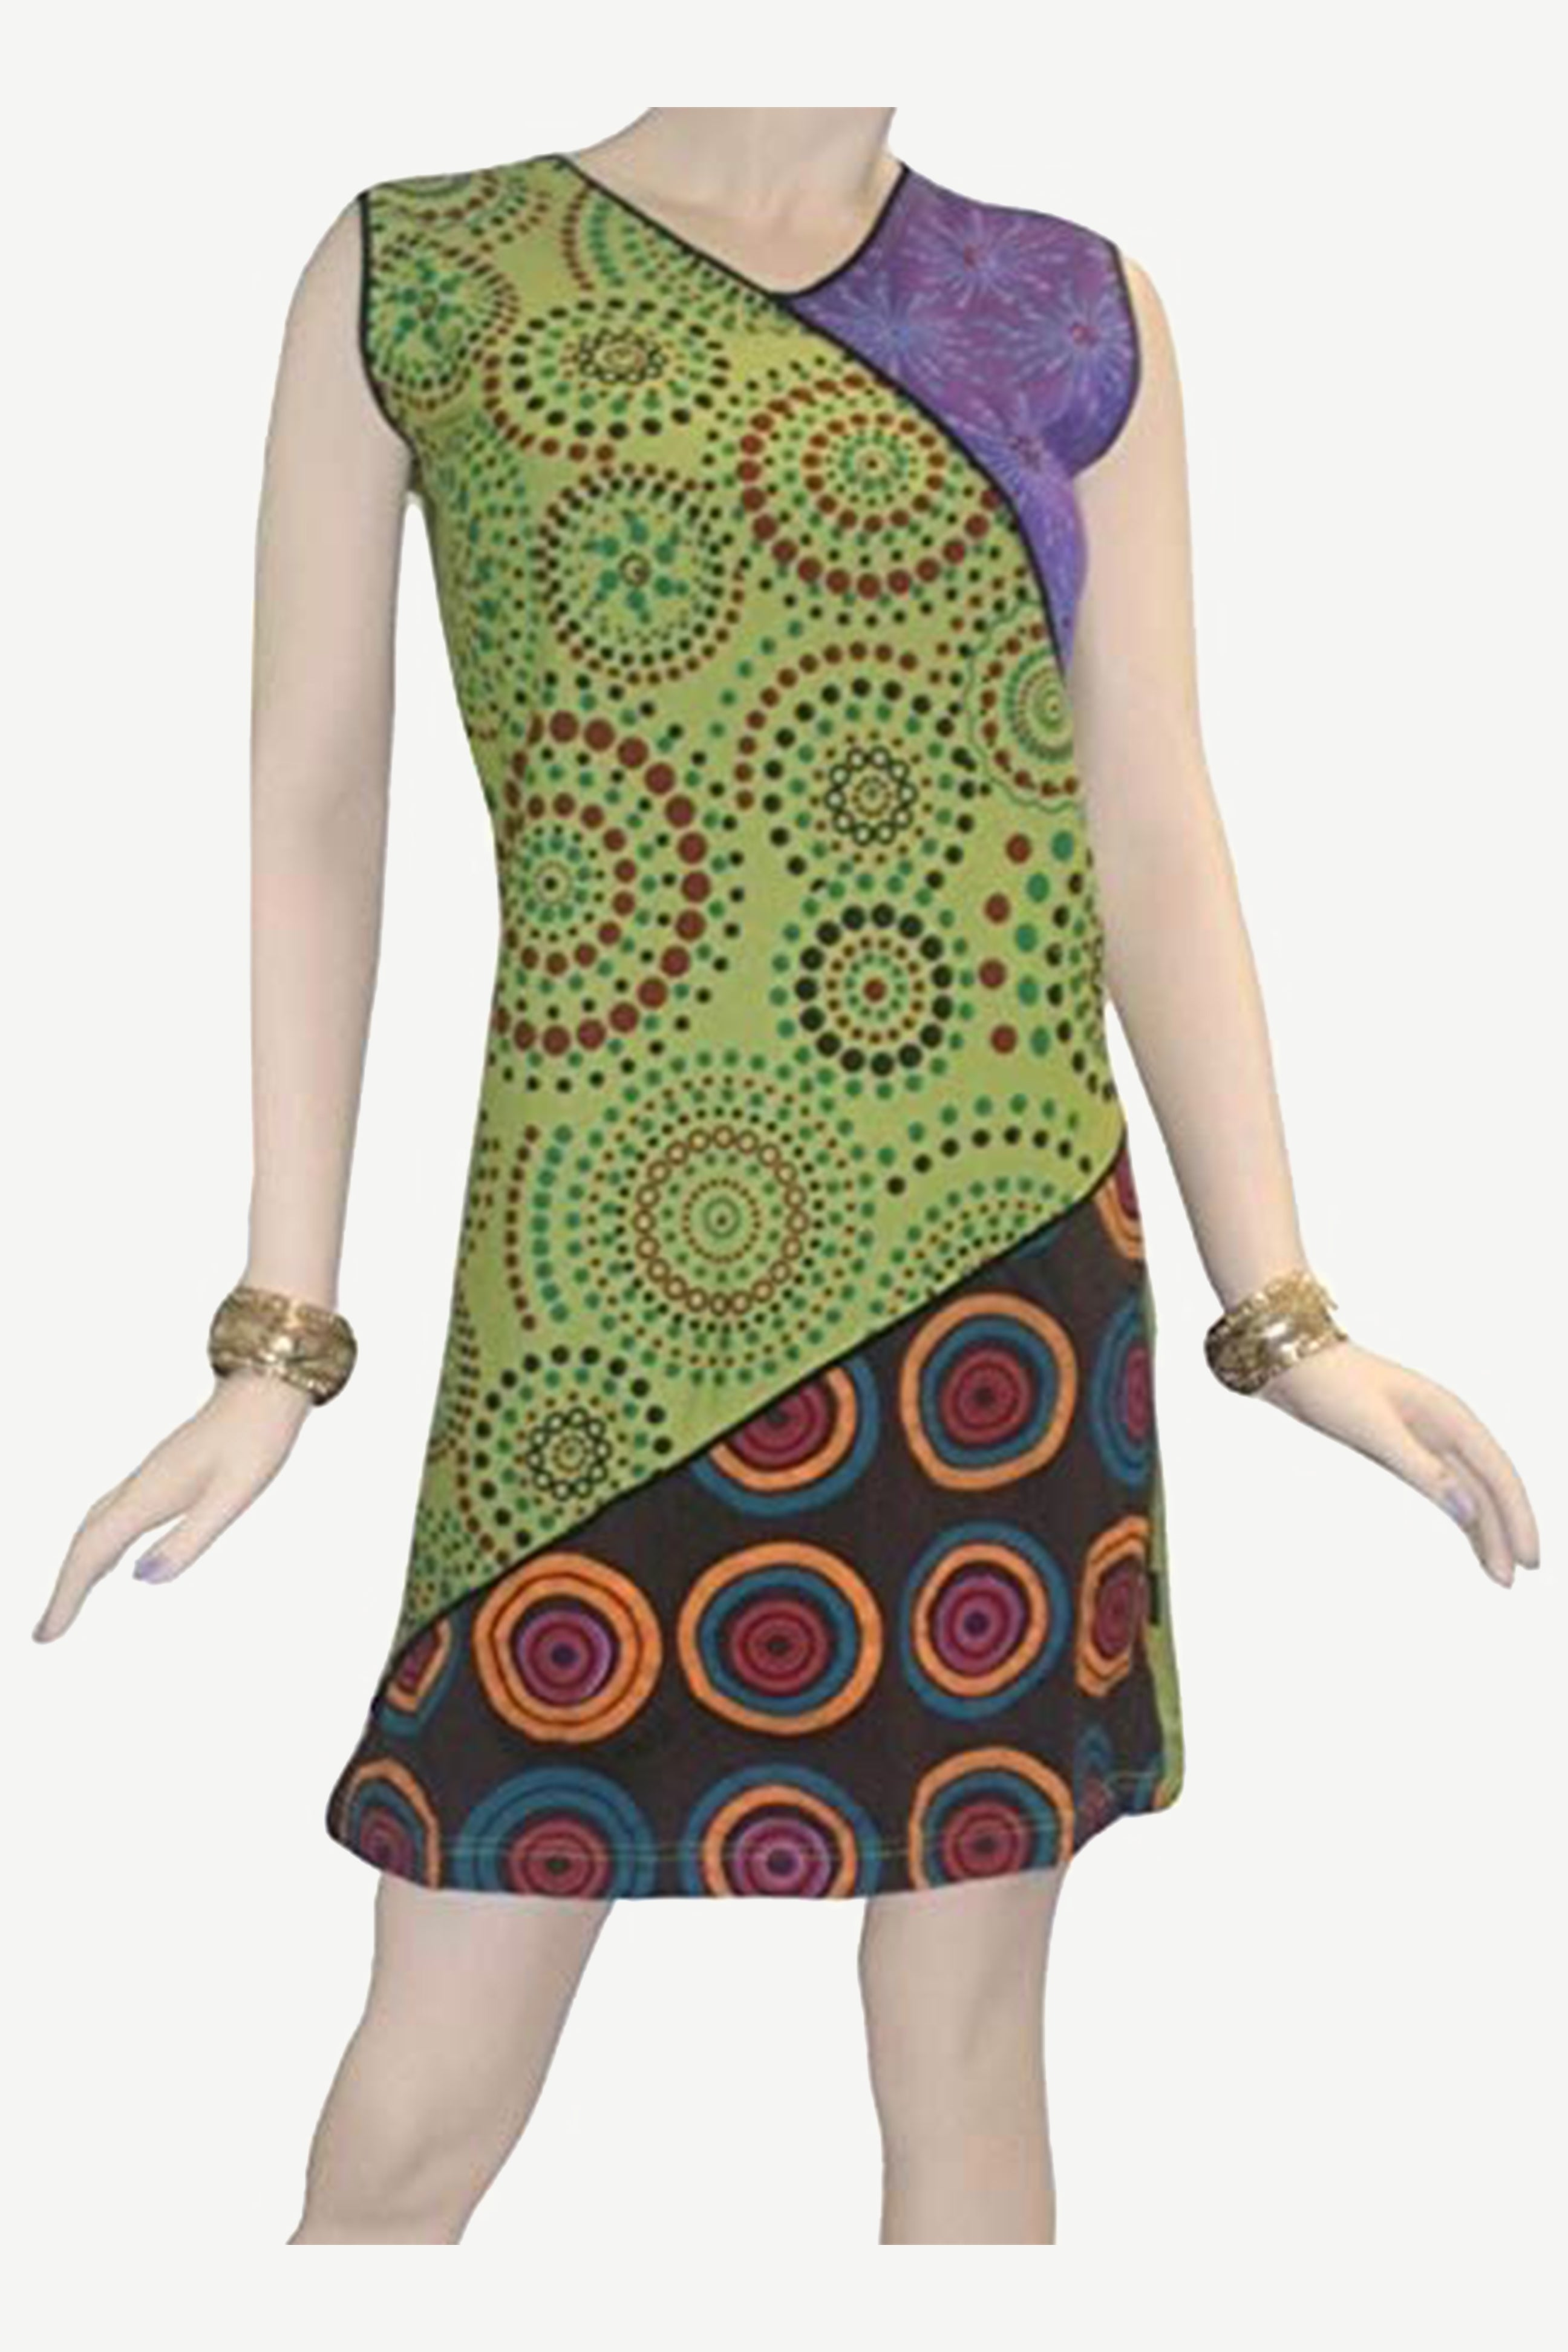 RD 12 Agan Traders Nepal Bohemian Gypsy Knit Cotton Knee Length Summer Dress - Agan Traders, Lime Green